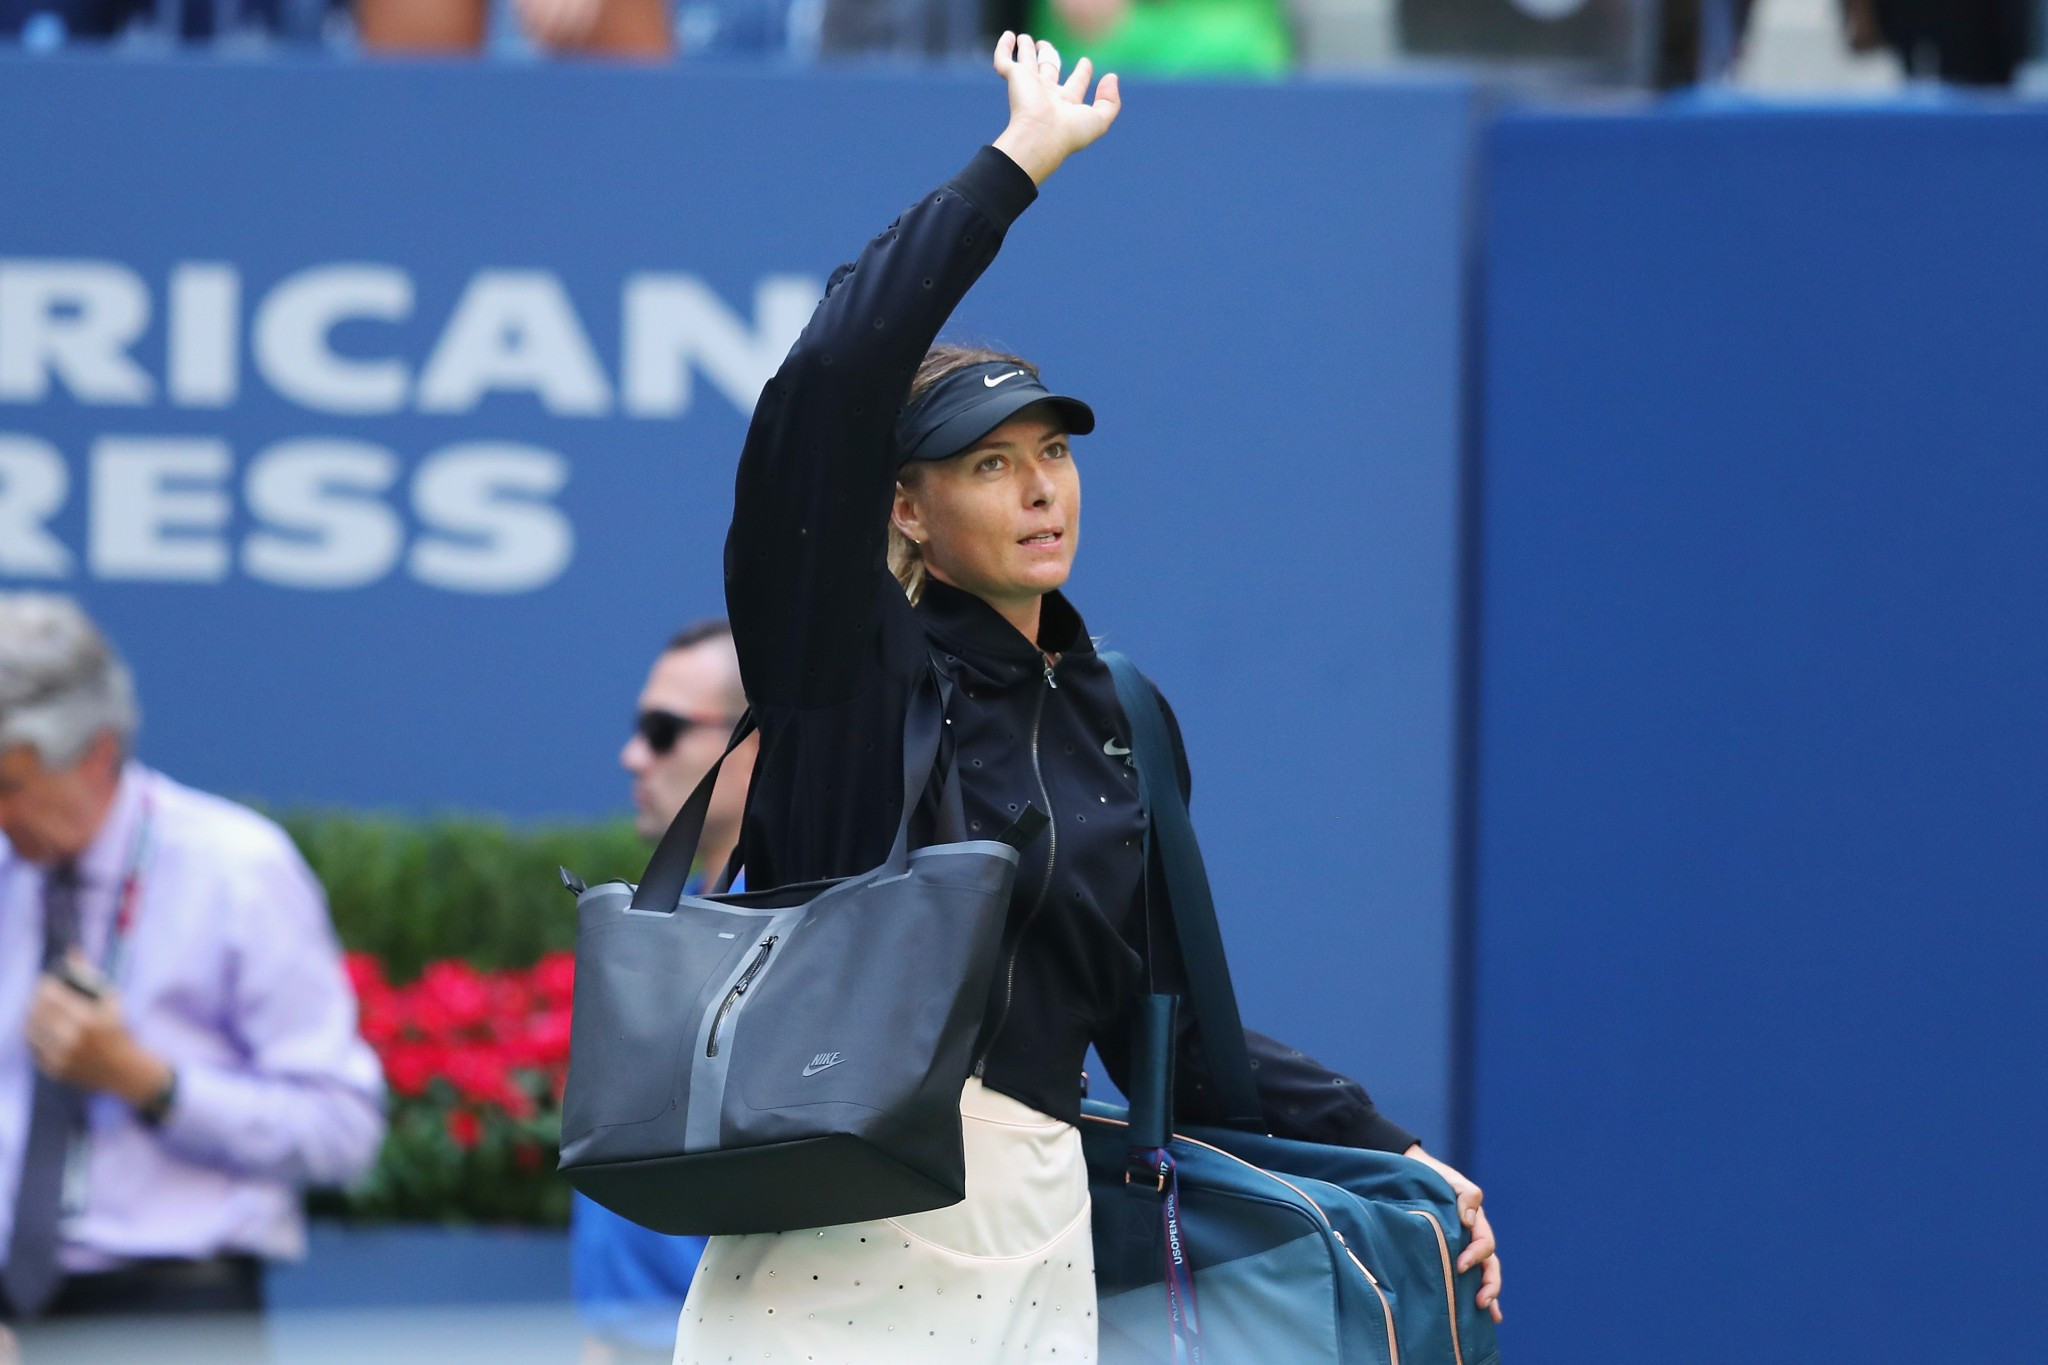 Russia's Maria Sharapova has been eliminated from the US Open by Latvia's Anastasija Sevastova ©Getty Images